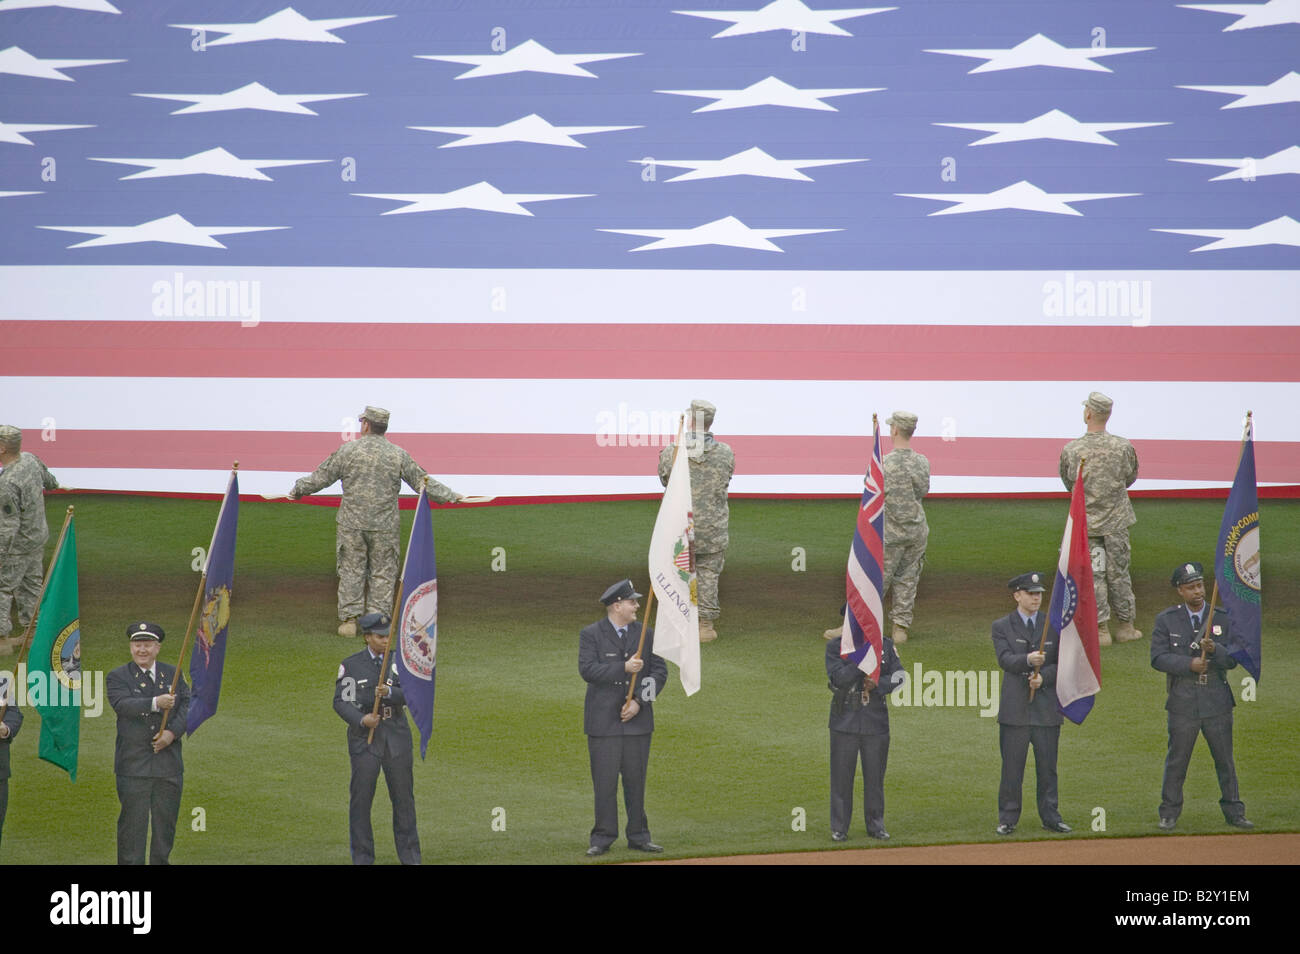 Opening Day Ceremonies featuring gigantic American Flag, Philadelphia PA - Stock Image